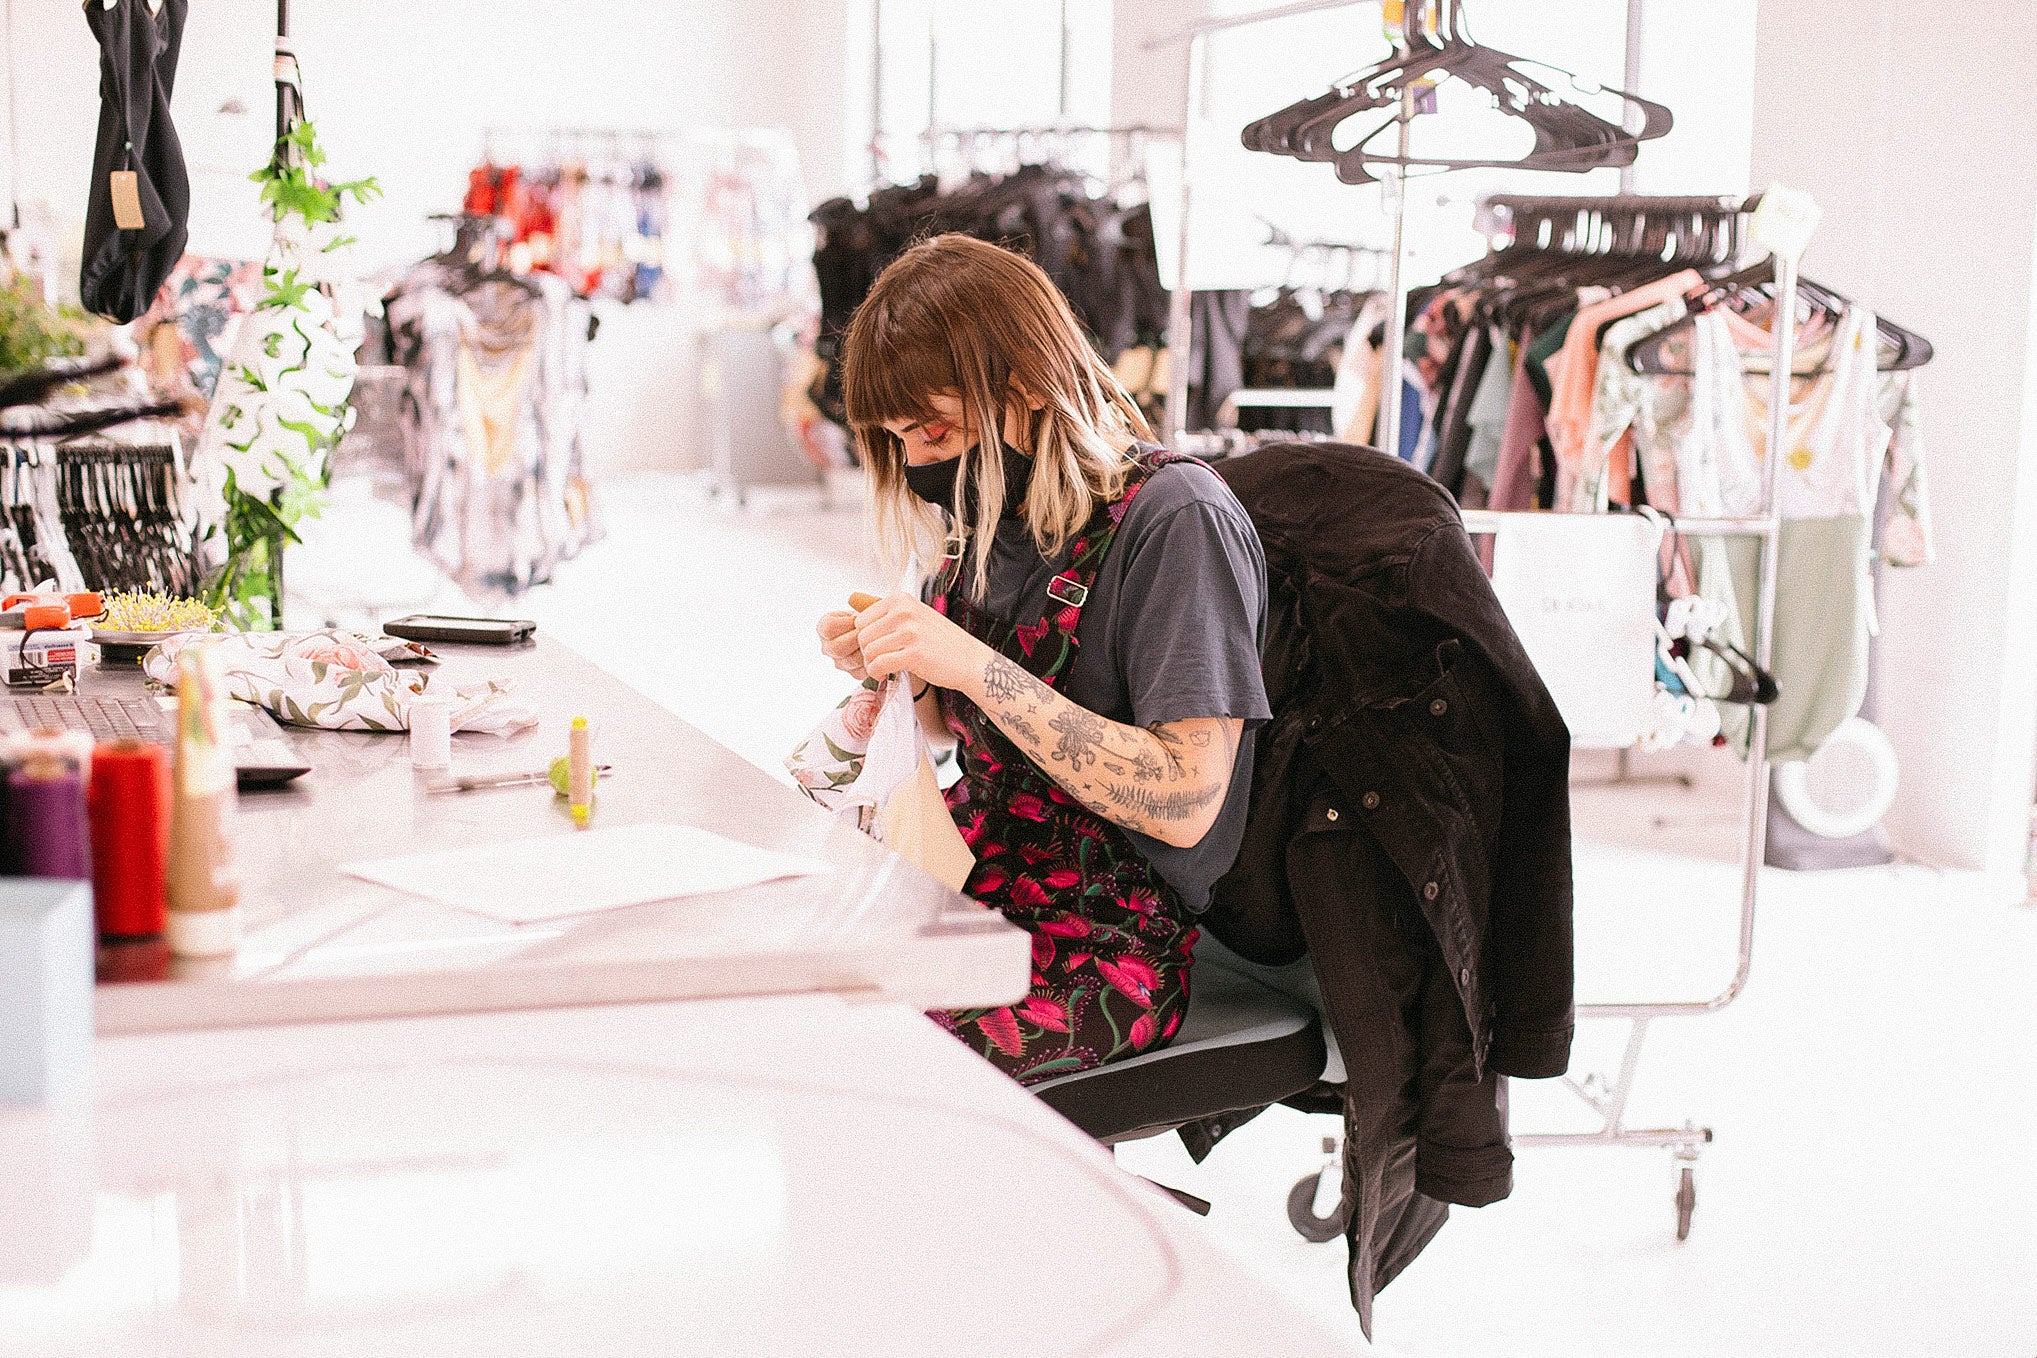 A woman with brown hair wearing colorful black & pink floral overalls sits at a table and inspects a leotard.